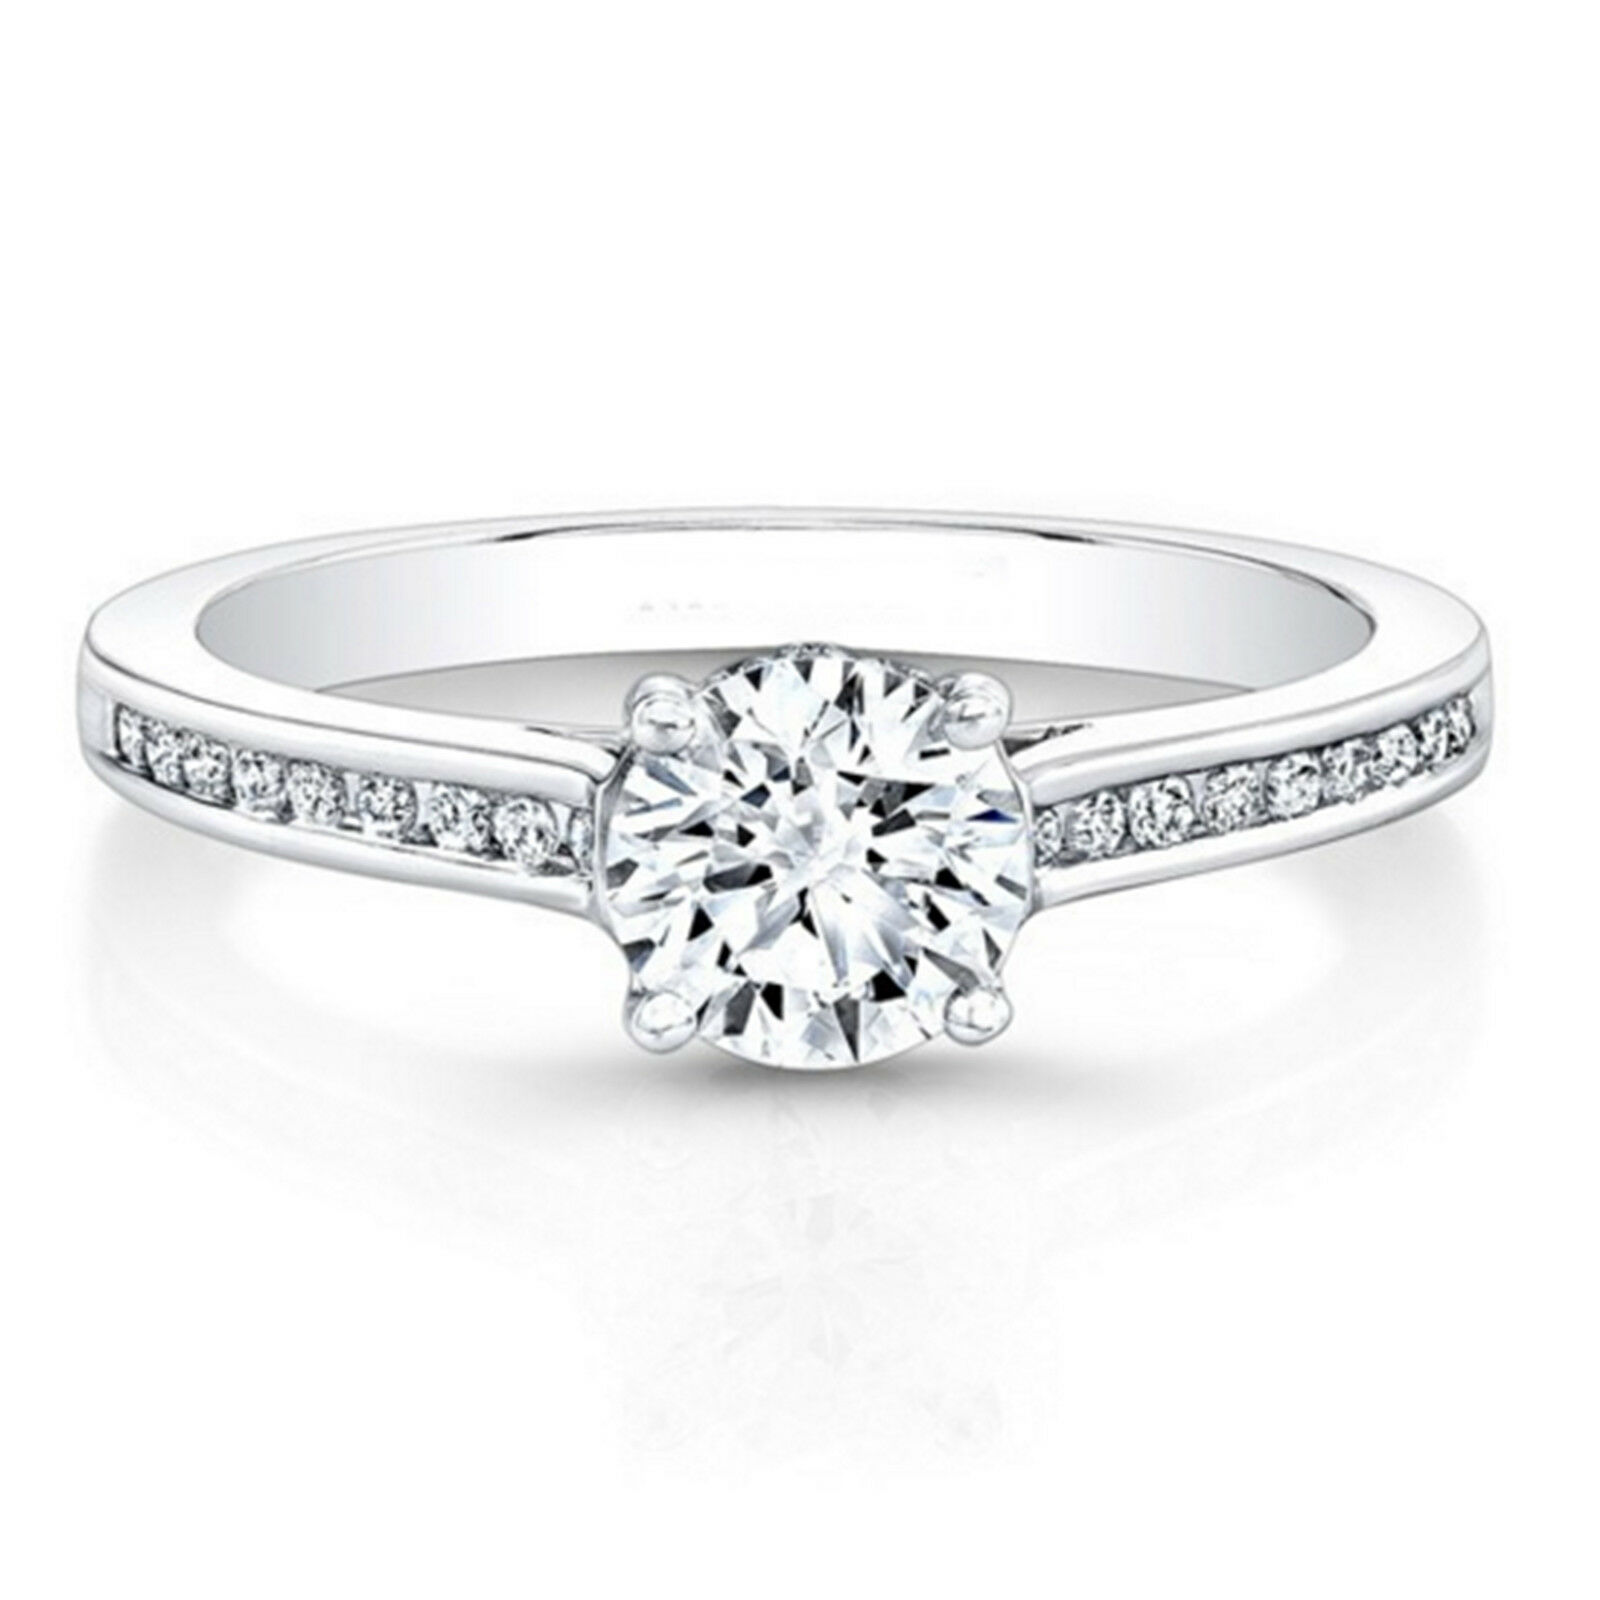 Engagement Rings Diamond 0.83ct Round Diamond Engagement Wedding Band Solid 14k Solid White Gold